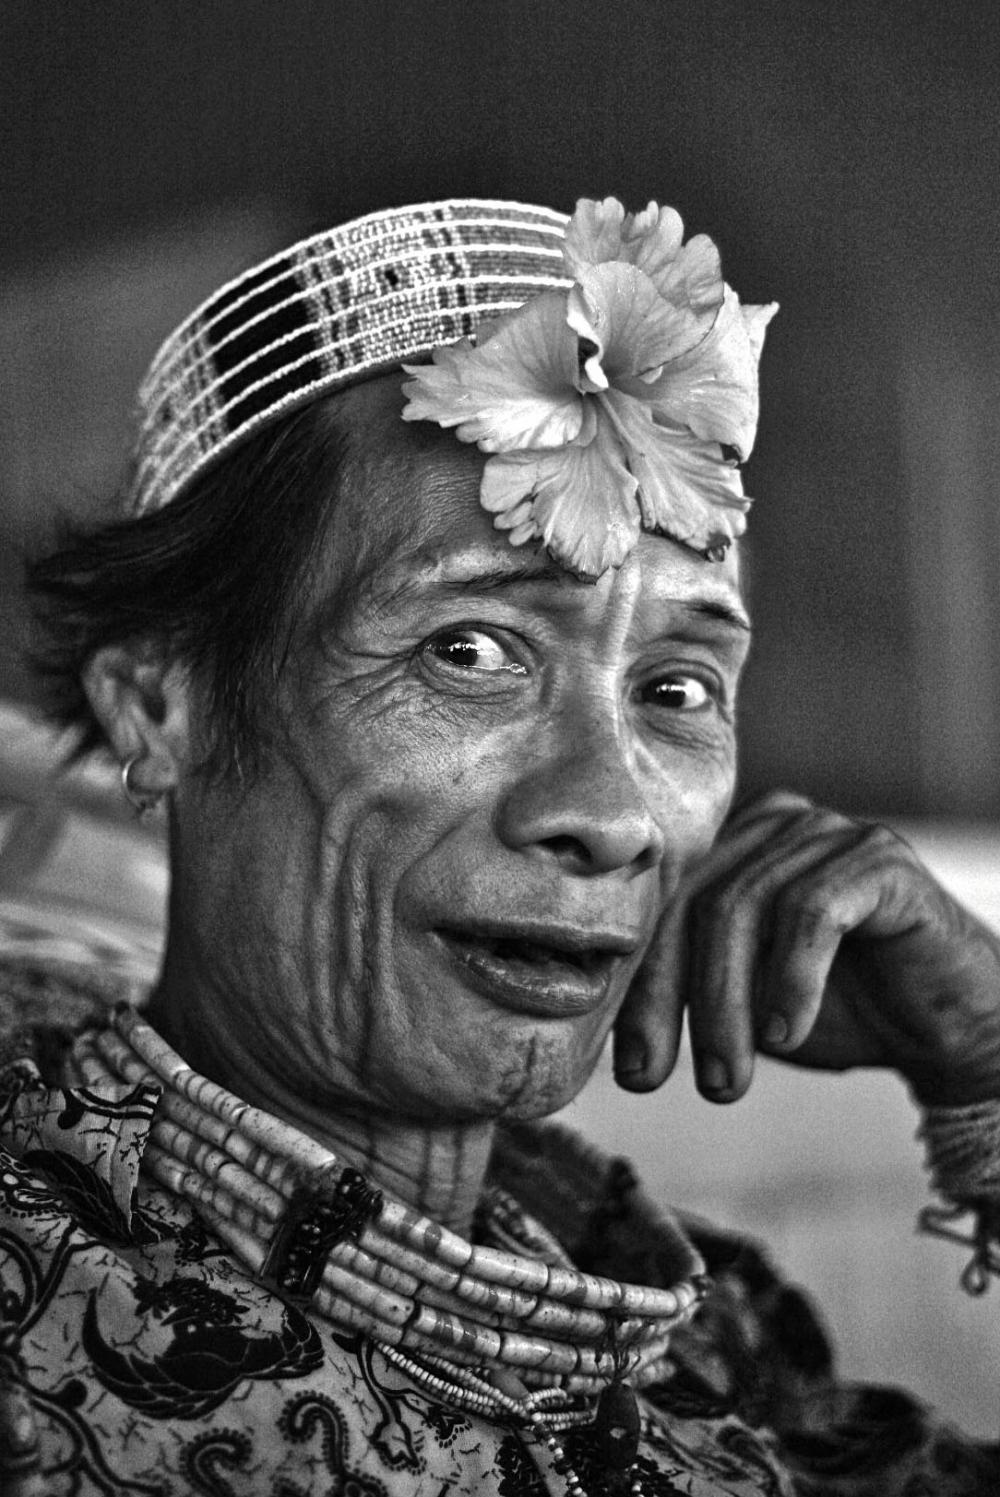 Mentawai medicine man. Photo thanks Kate Gerson